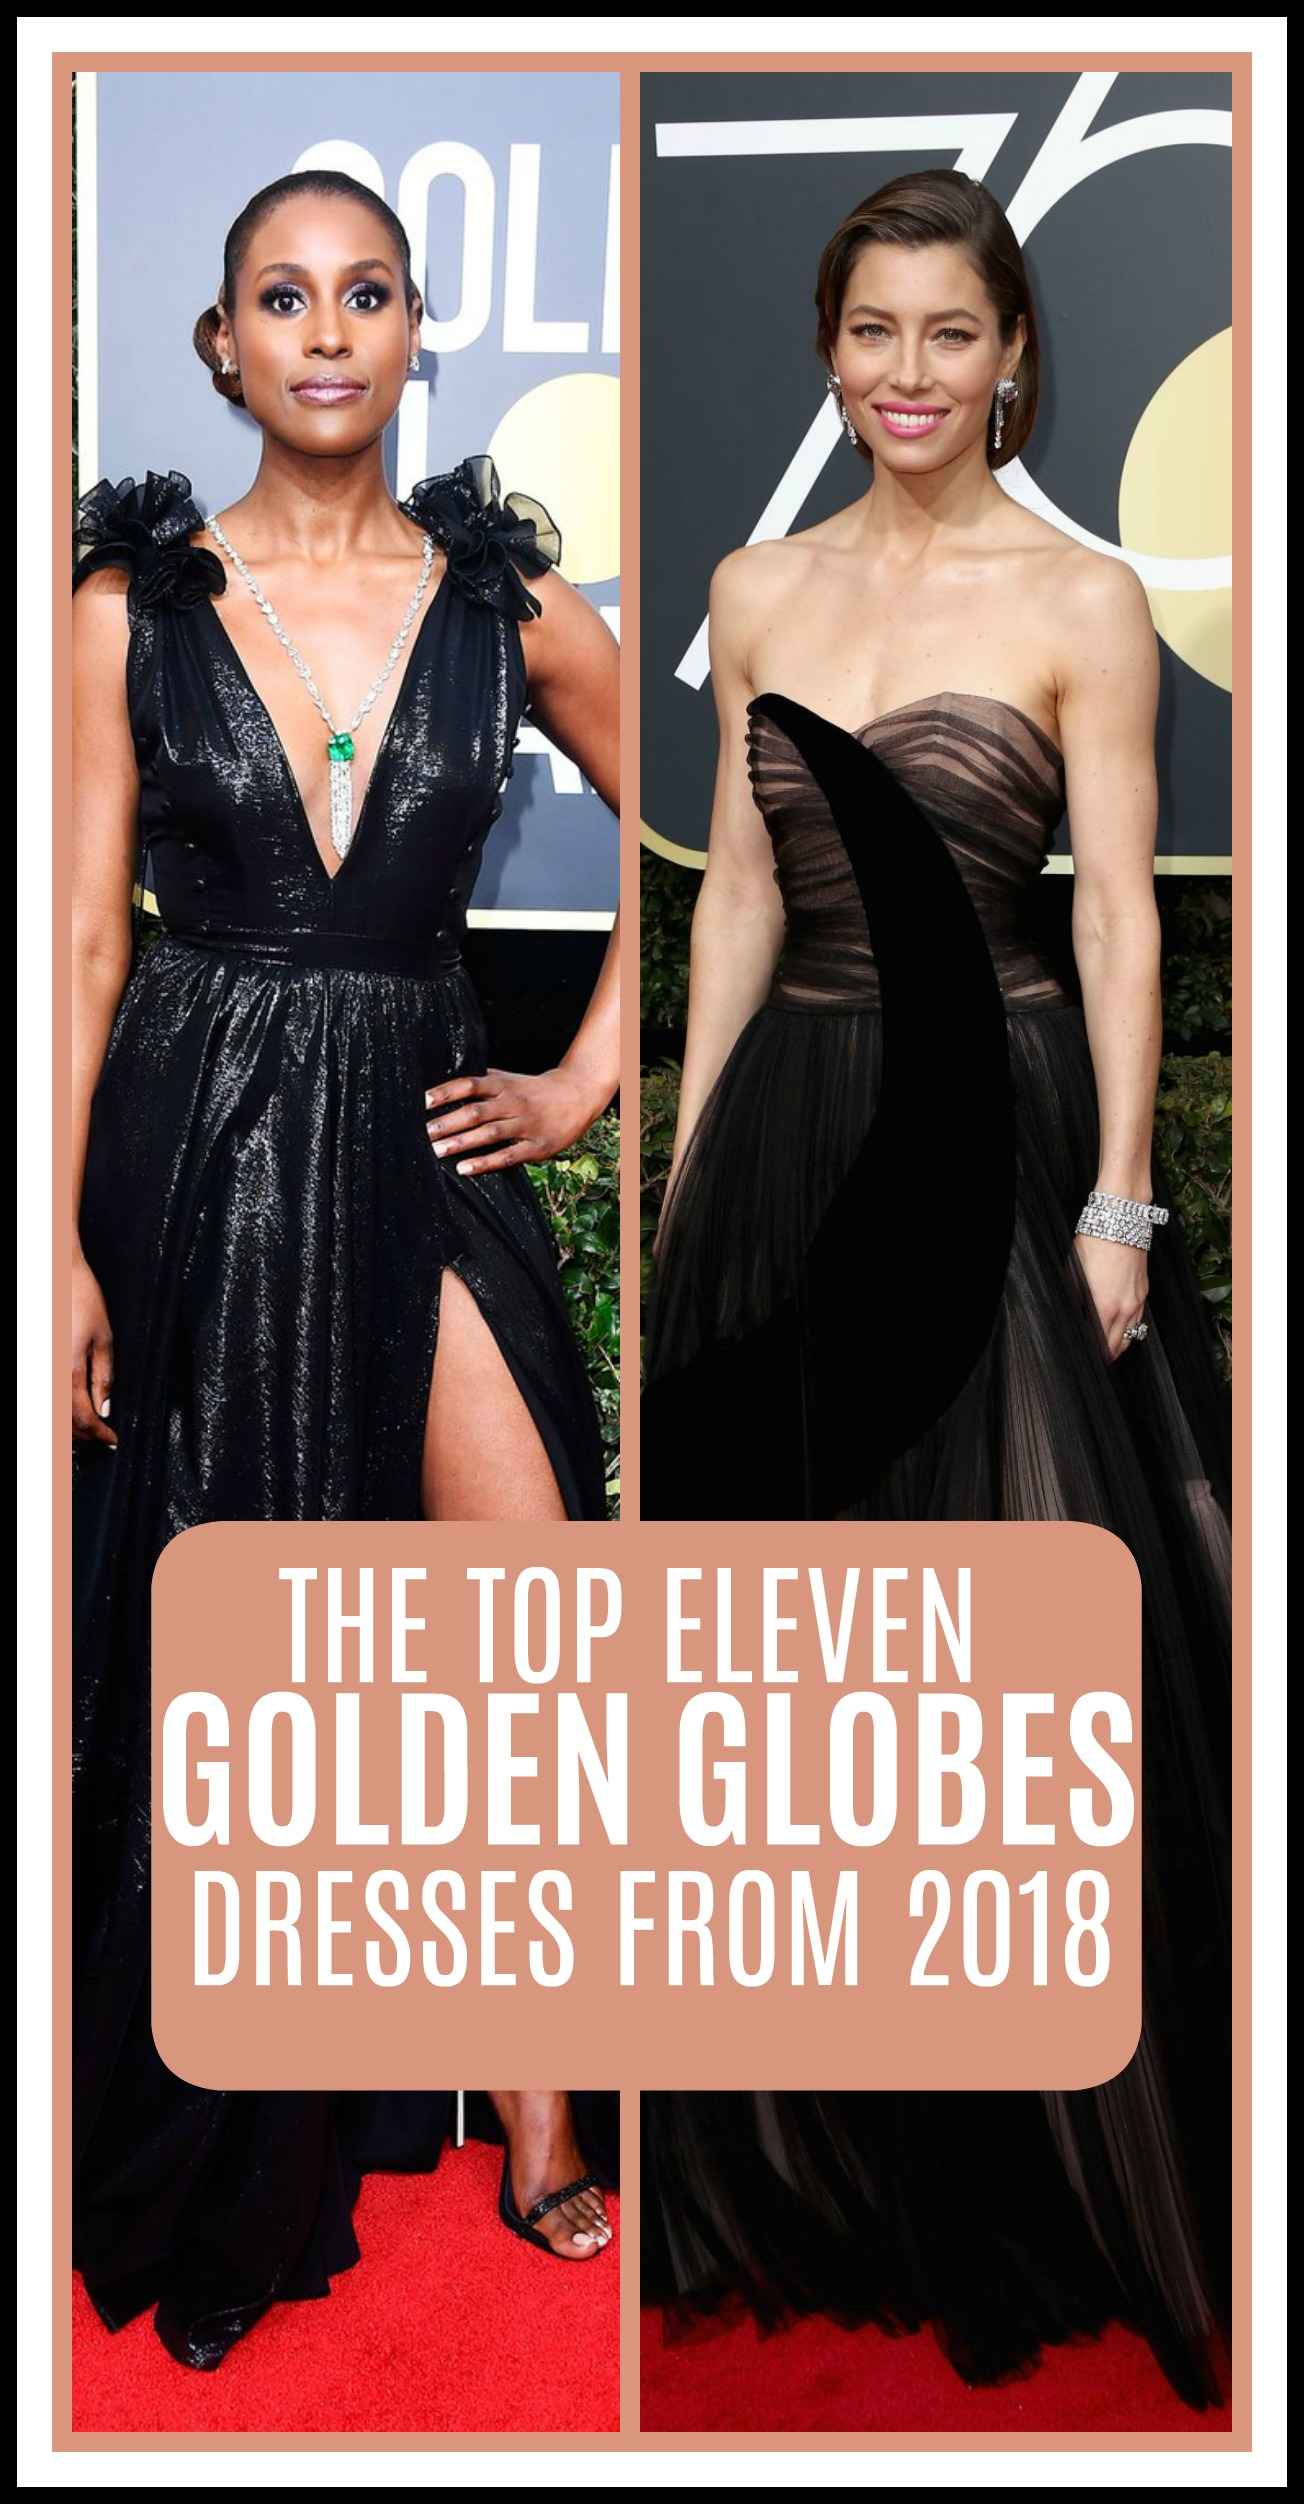 golden globes best dressed, golden globes 2018